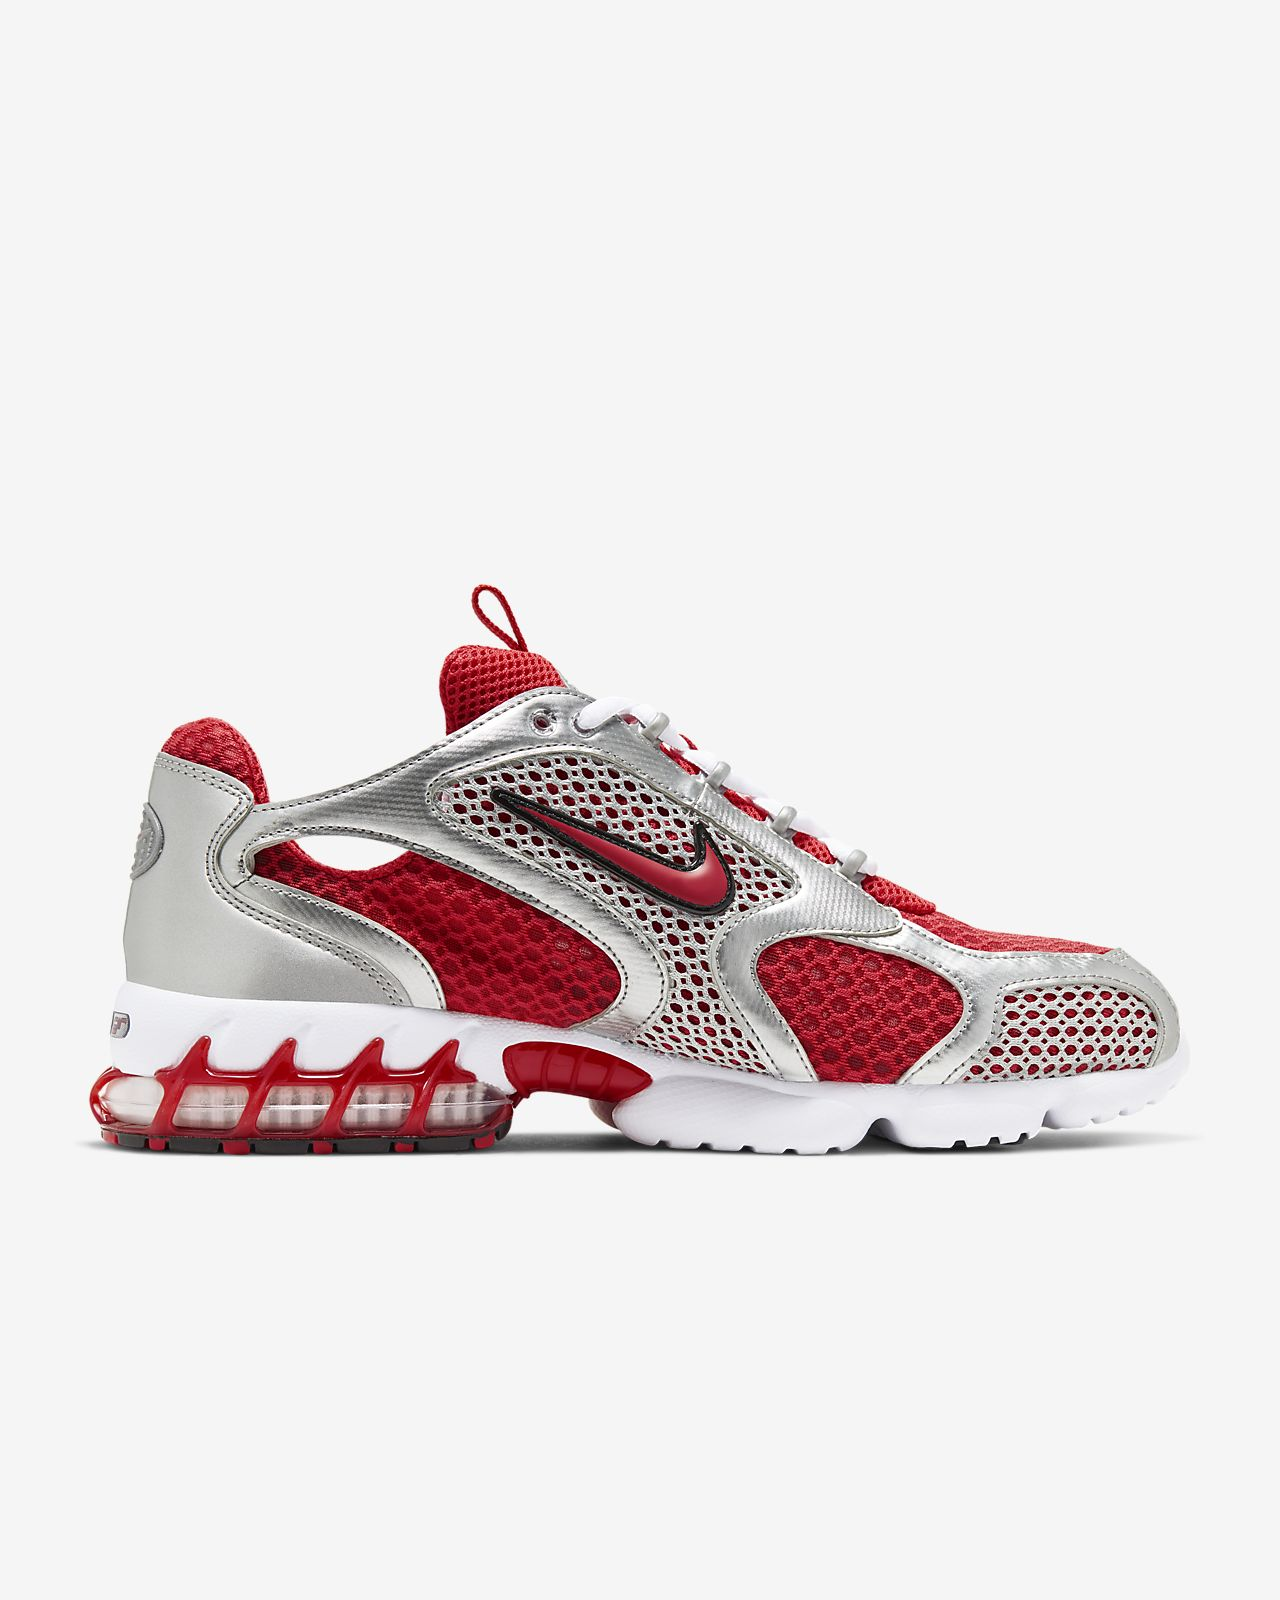 Chaussure Nike Air Zoom Spiridon Cage 2 pour Homme